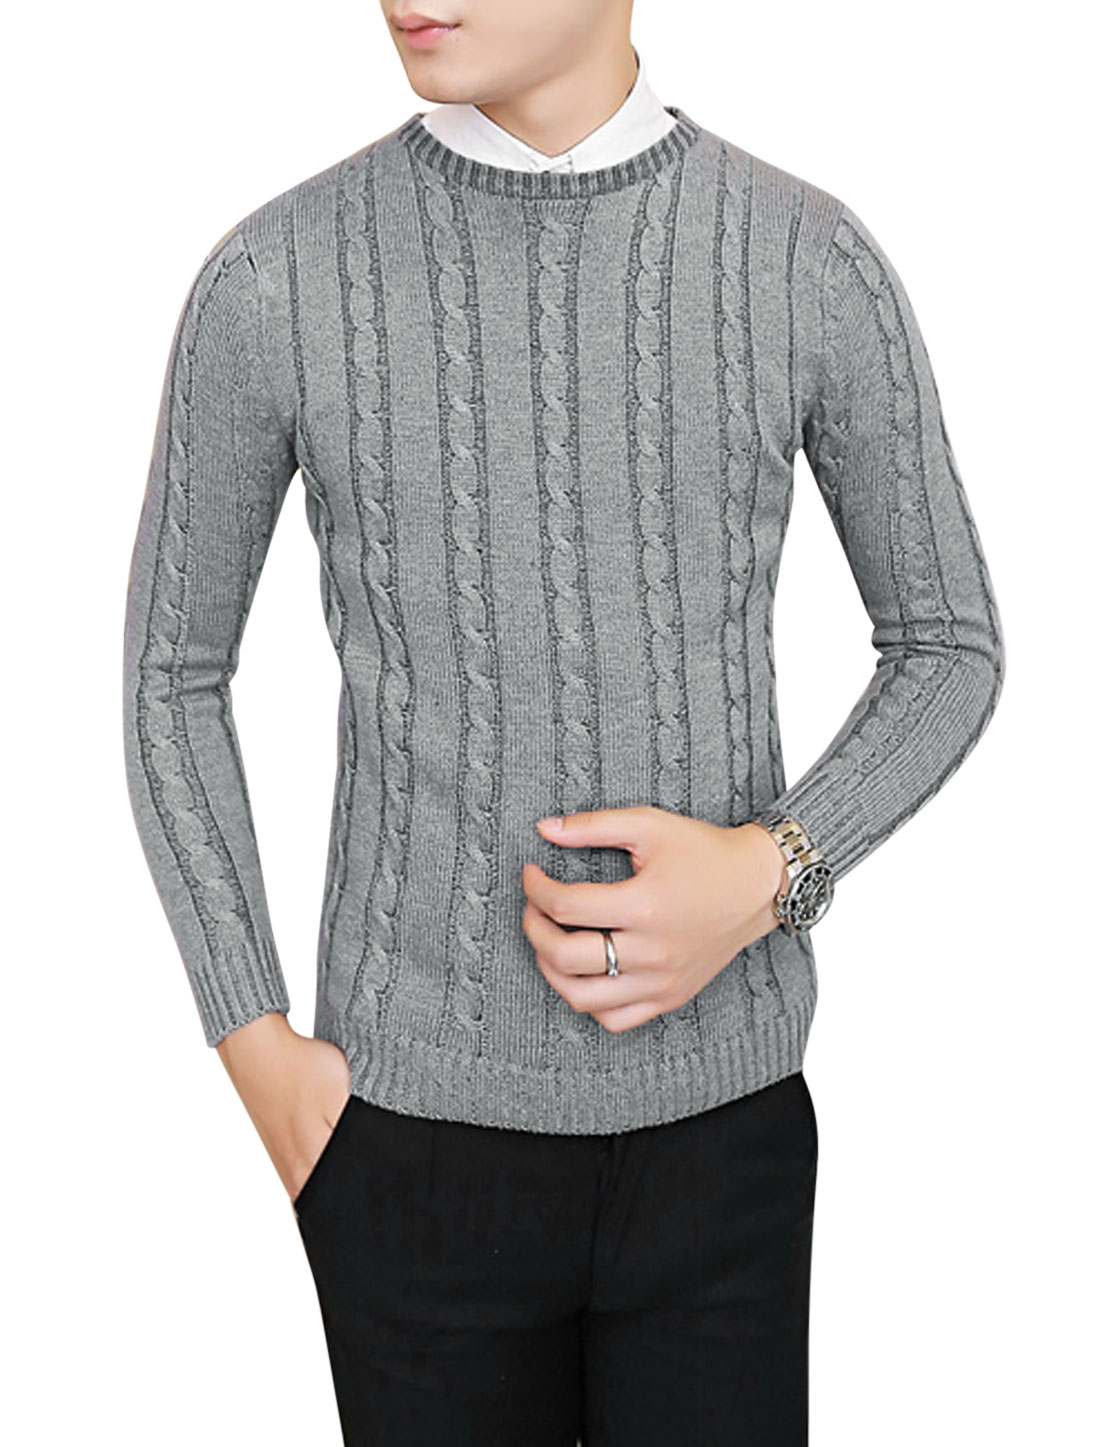 Men Skinny Style Crew Neck Slipover Casual Sweater Gray S